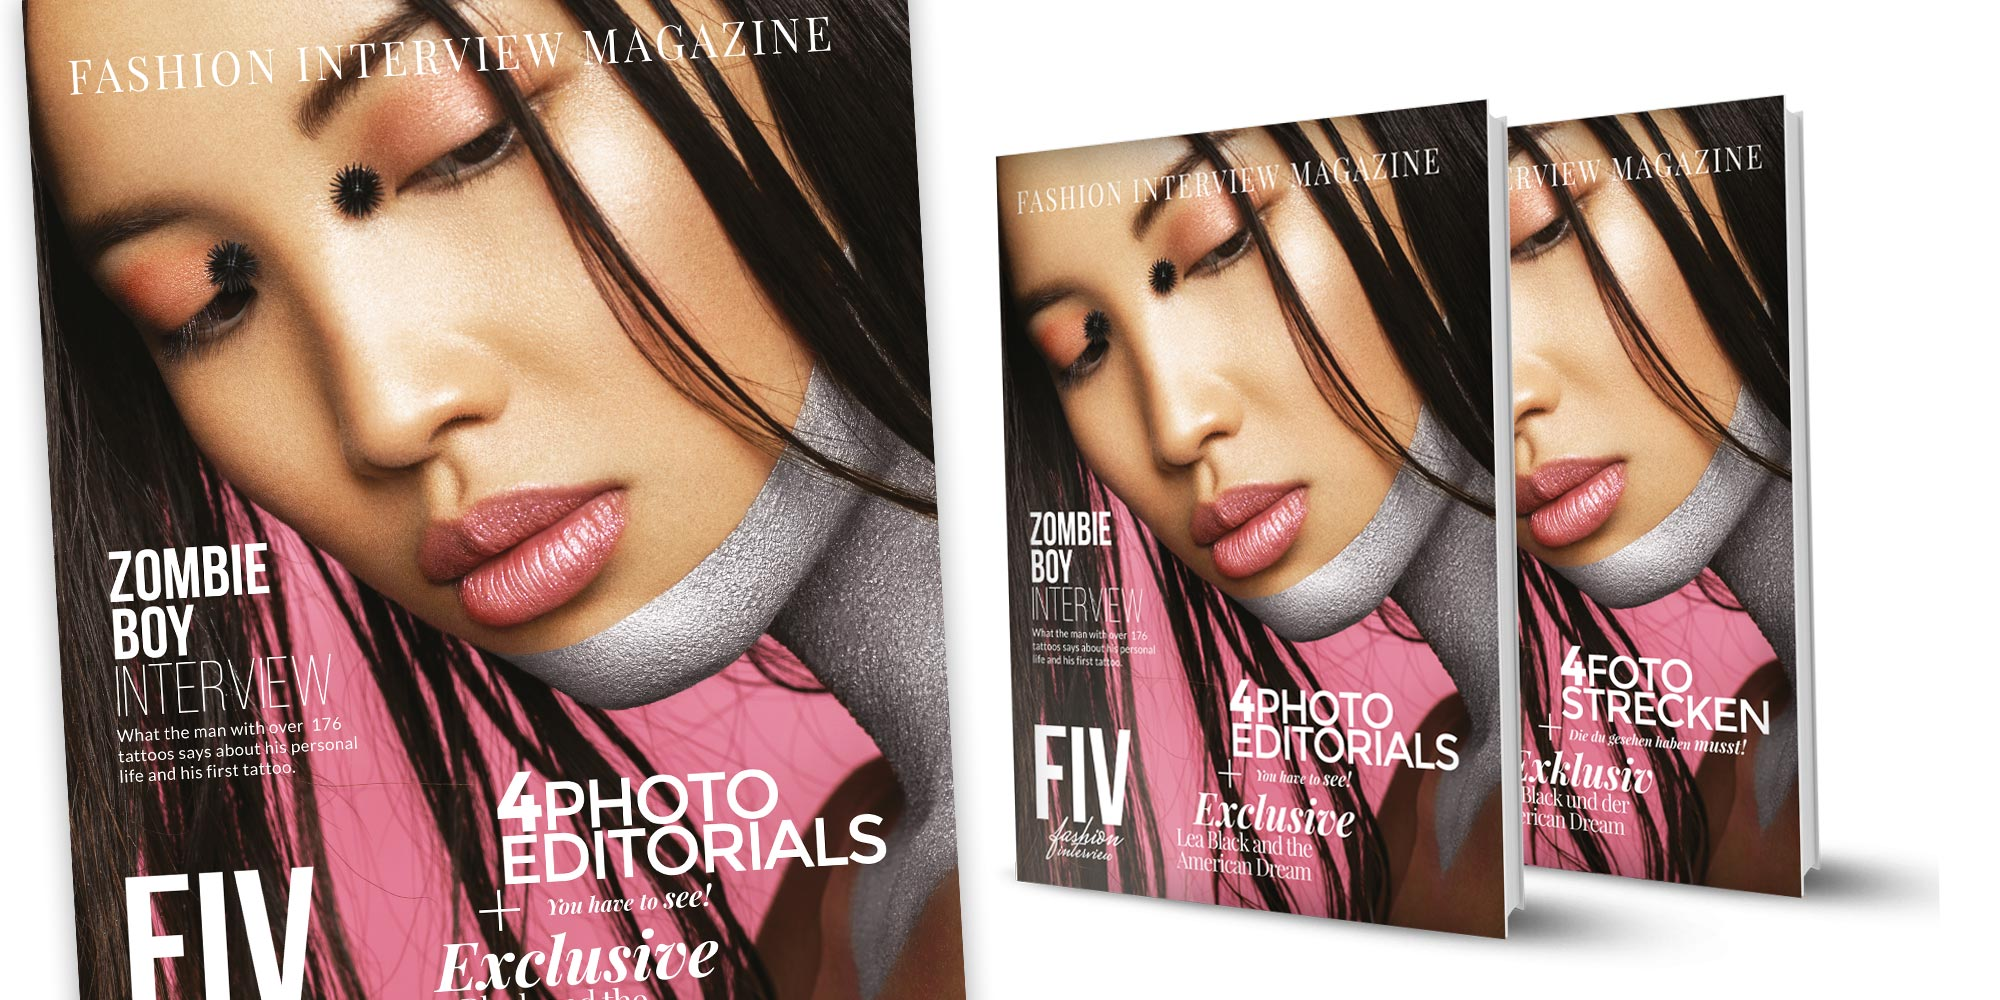 FIV Magazine out now! It's all about Fashion, Influencer, Models & Blogger